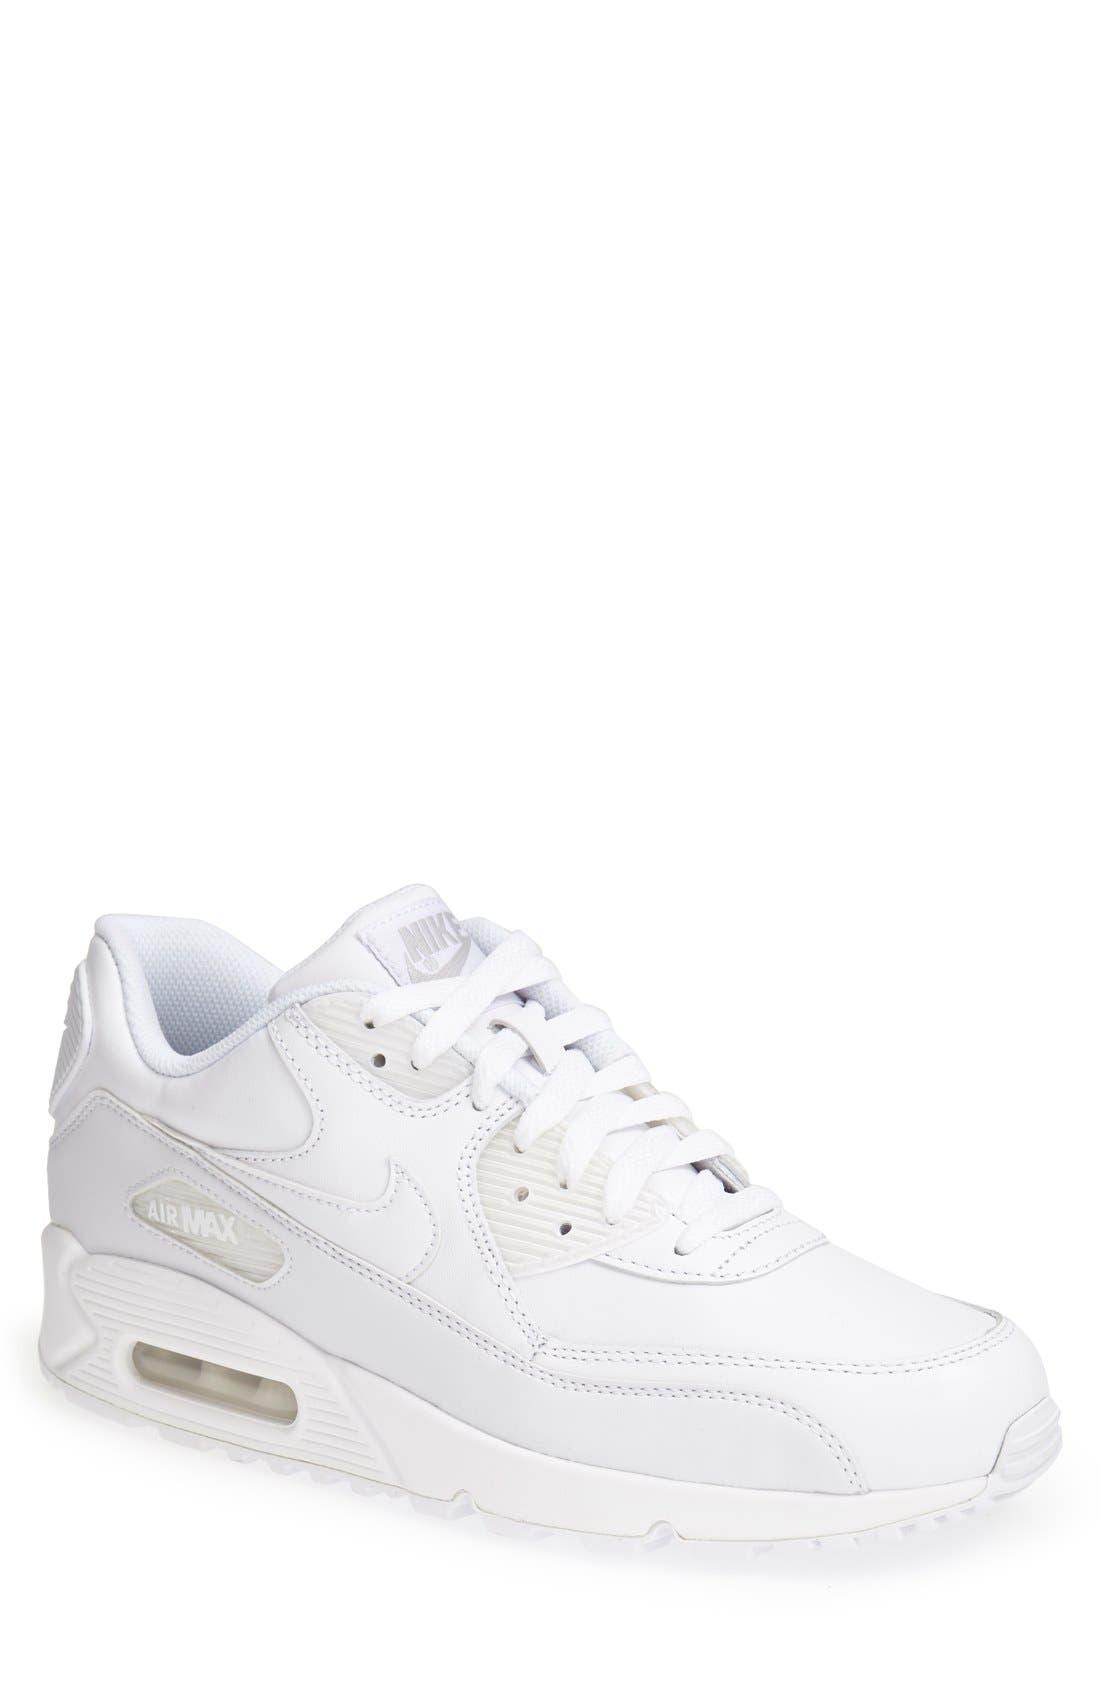 Main Image - Nike 'Air Max 90' Leather Sneaker (Men)